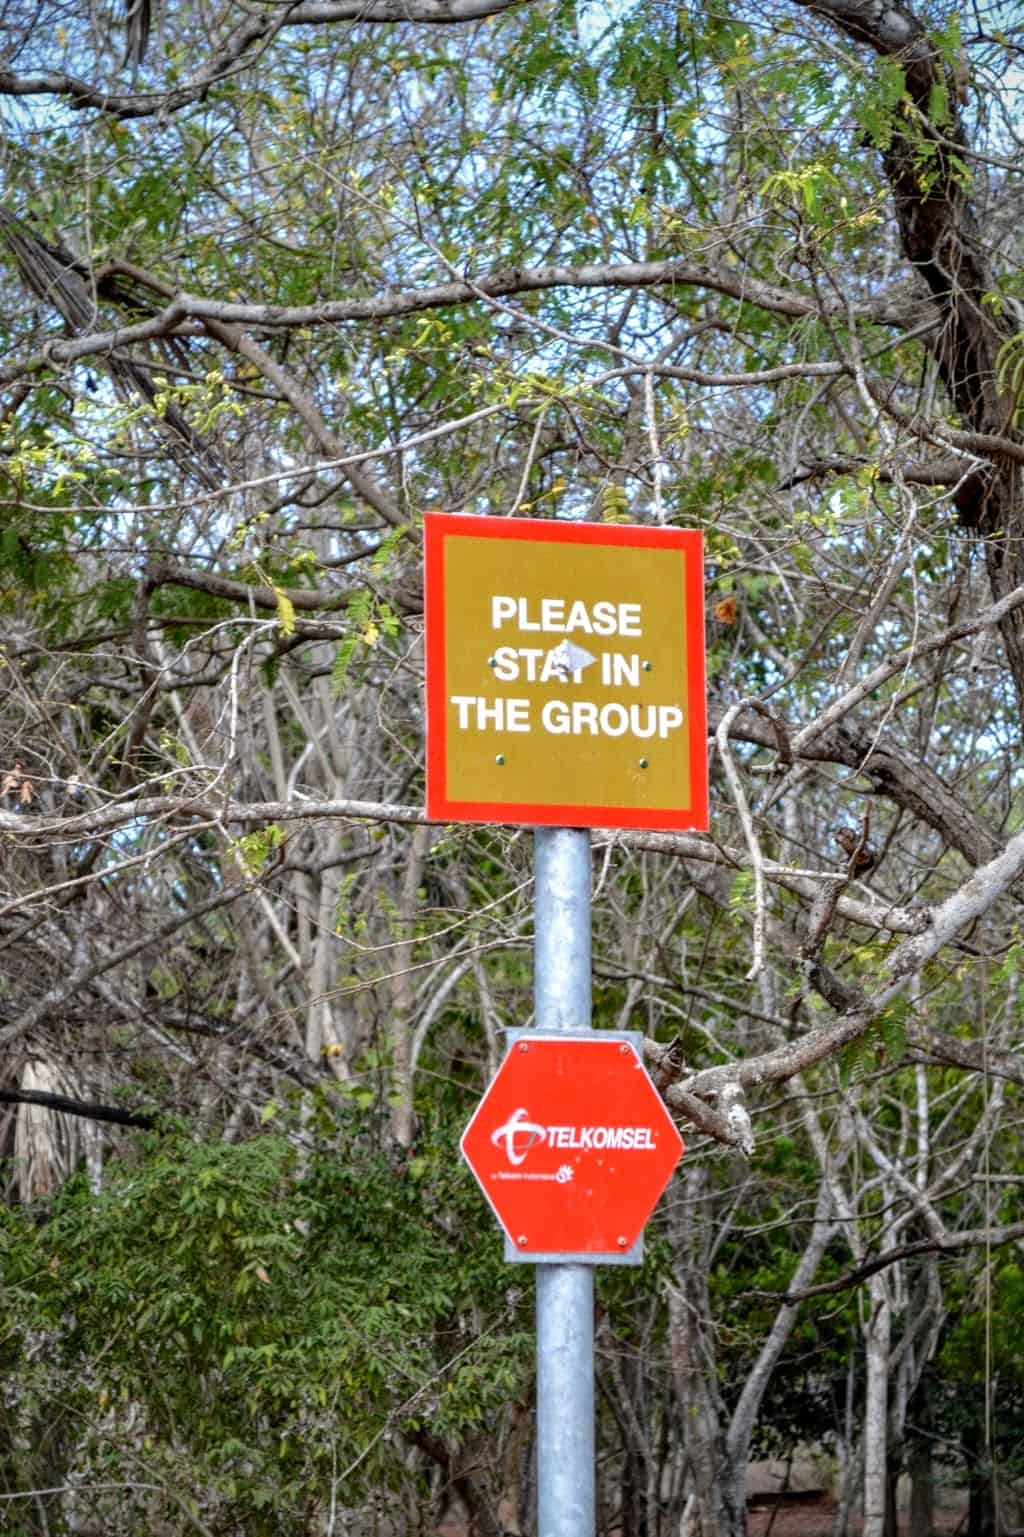 Warning sign to stay in the group